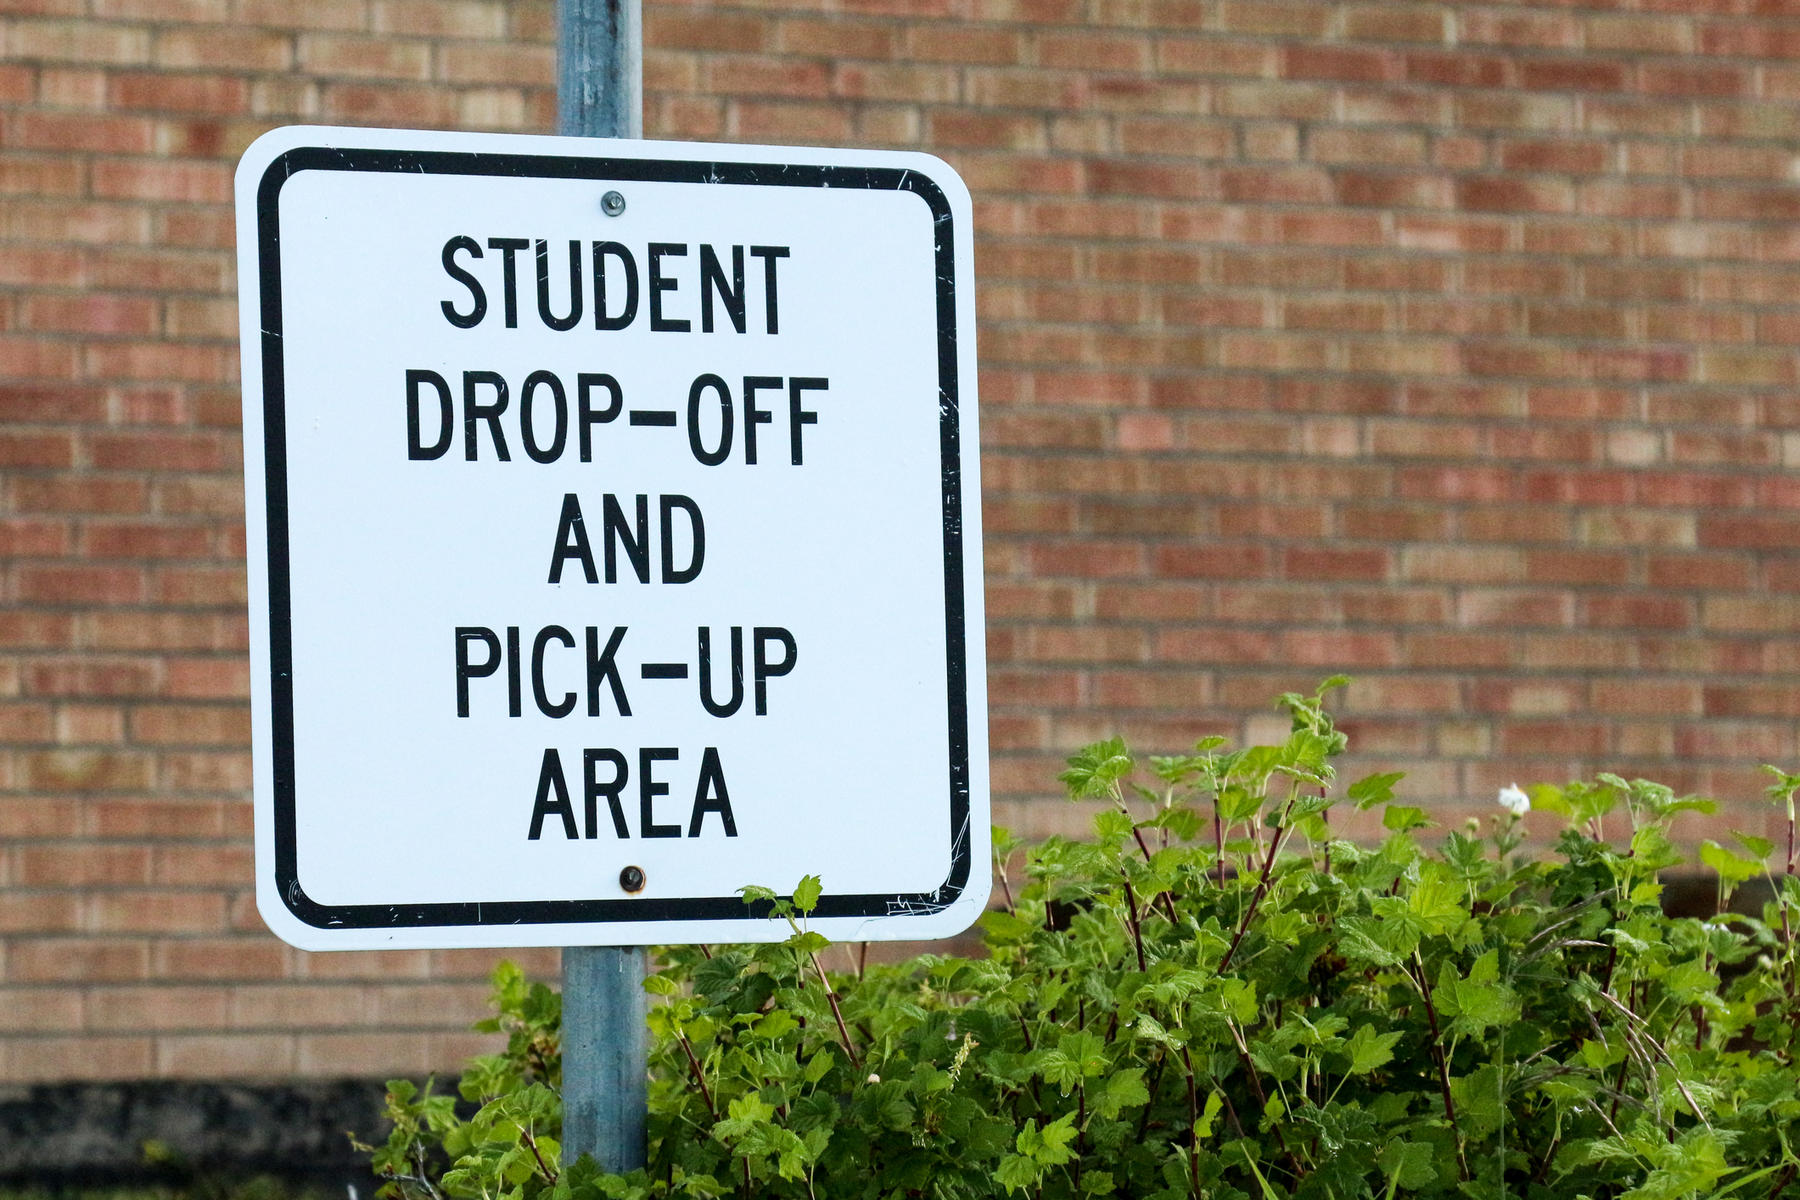 School dropoff and pickup sign